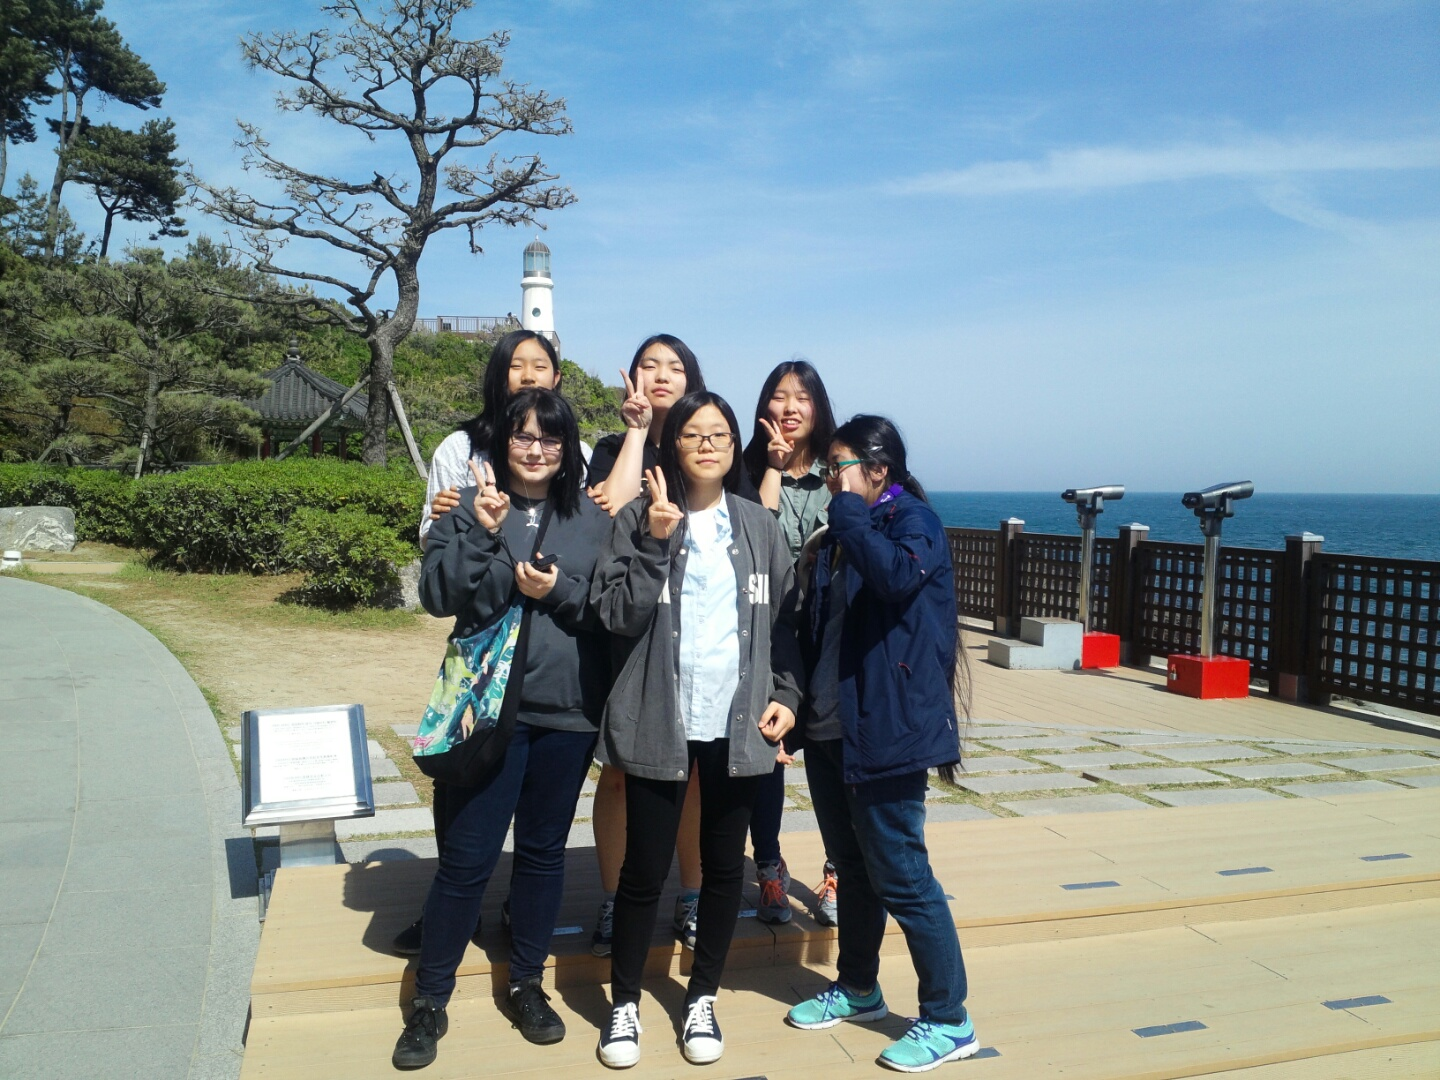 NSLI-Y student poses with her Korean classmates in front of a lighthouse, with the ocean to their left.